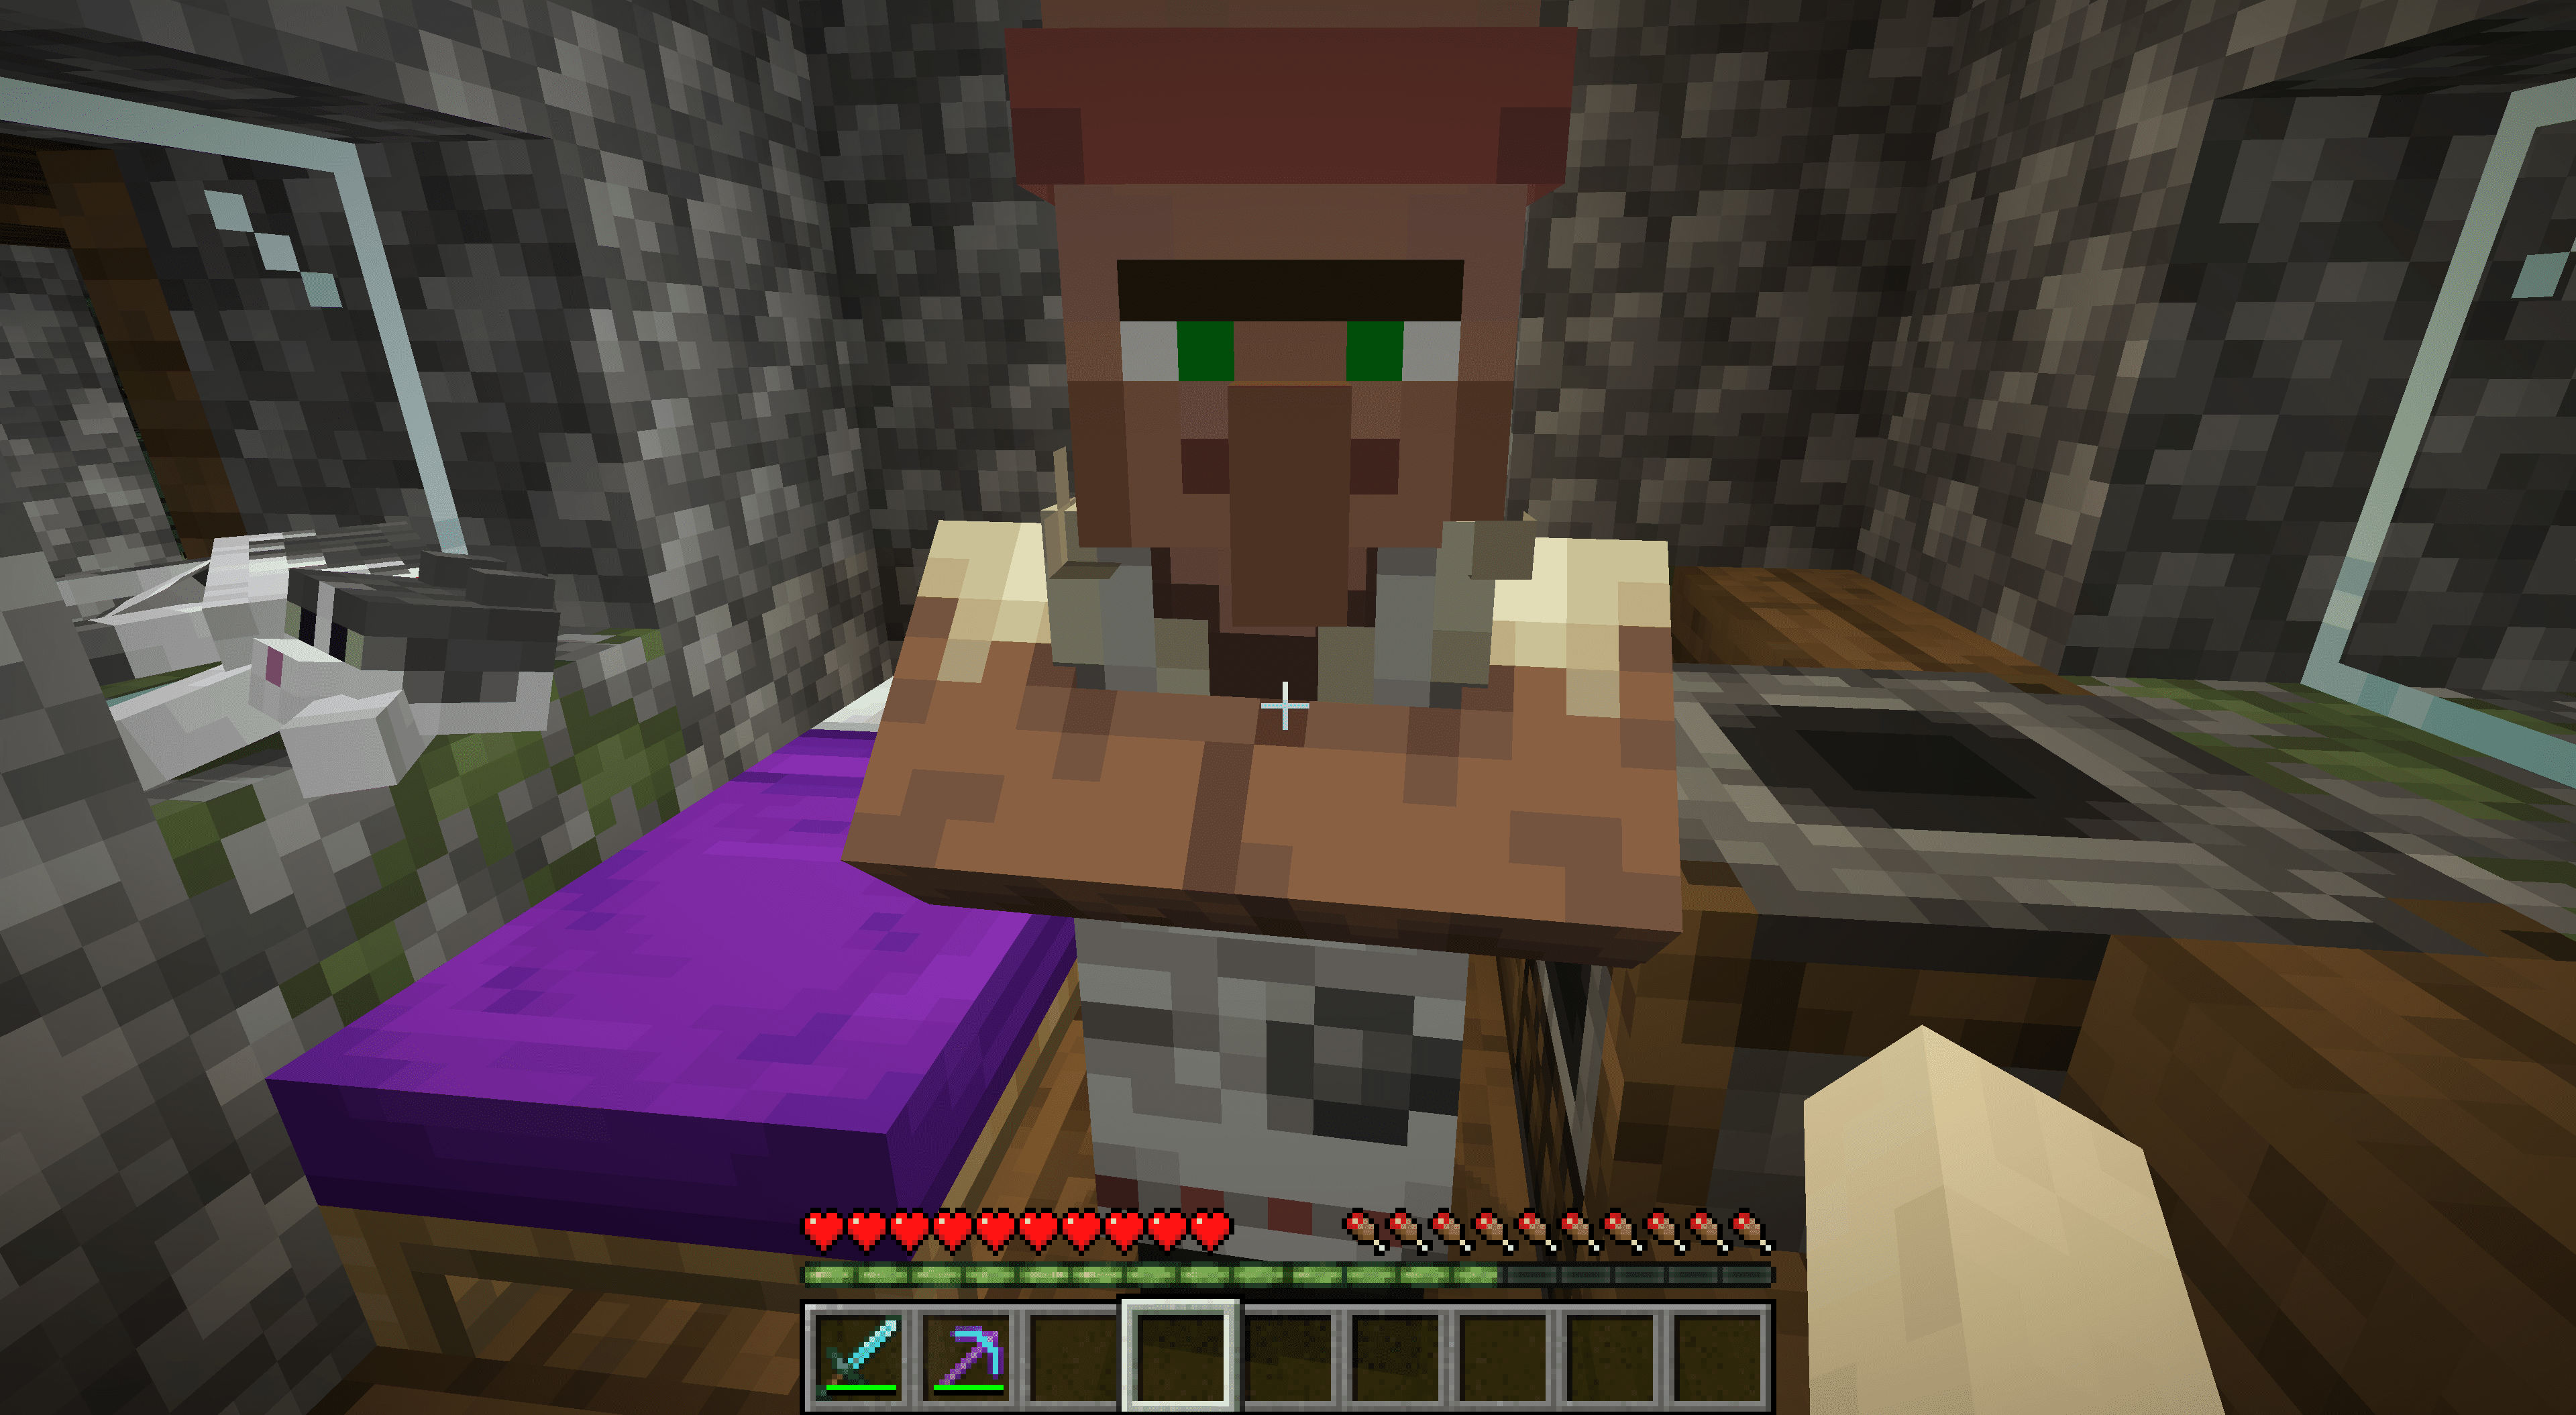 A butcher NPC in Minecraft with his smoker behind him.